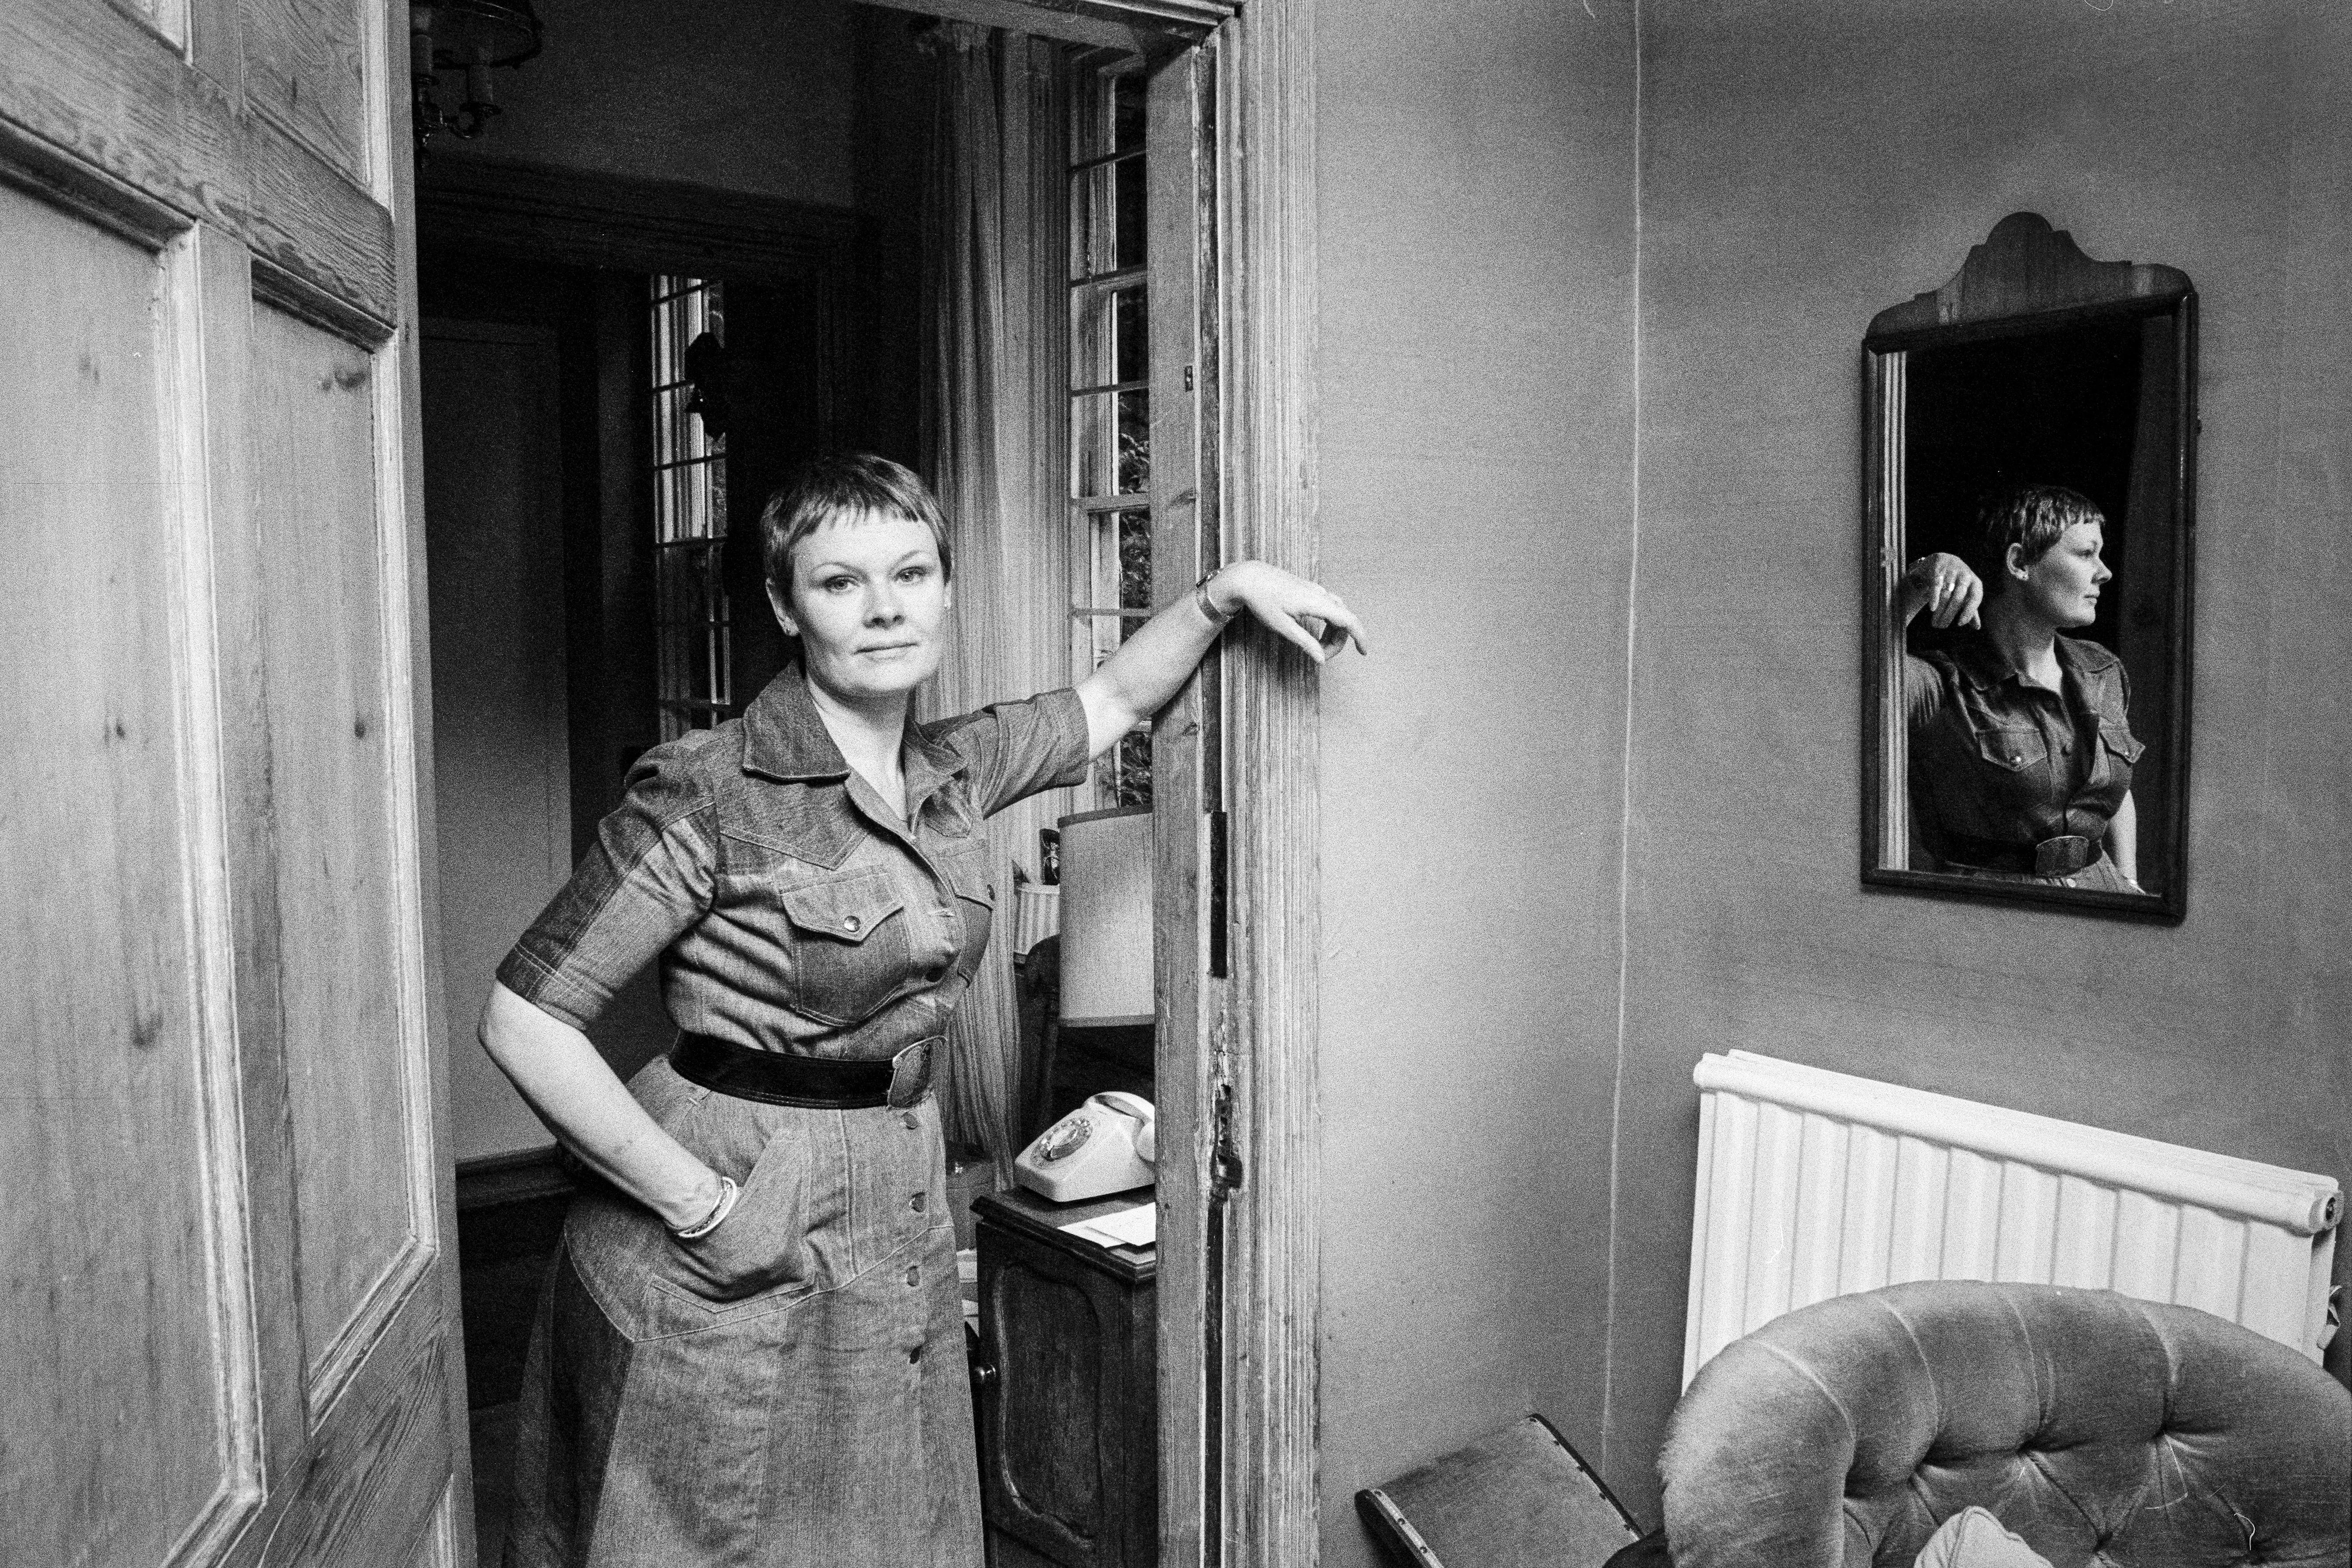 Buy your own Guardian classic photograph: Judi Dench, August 1977